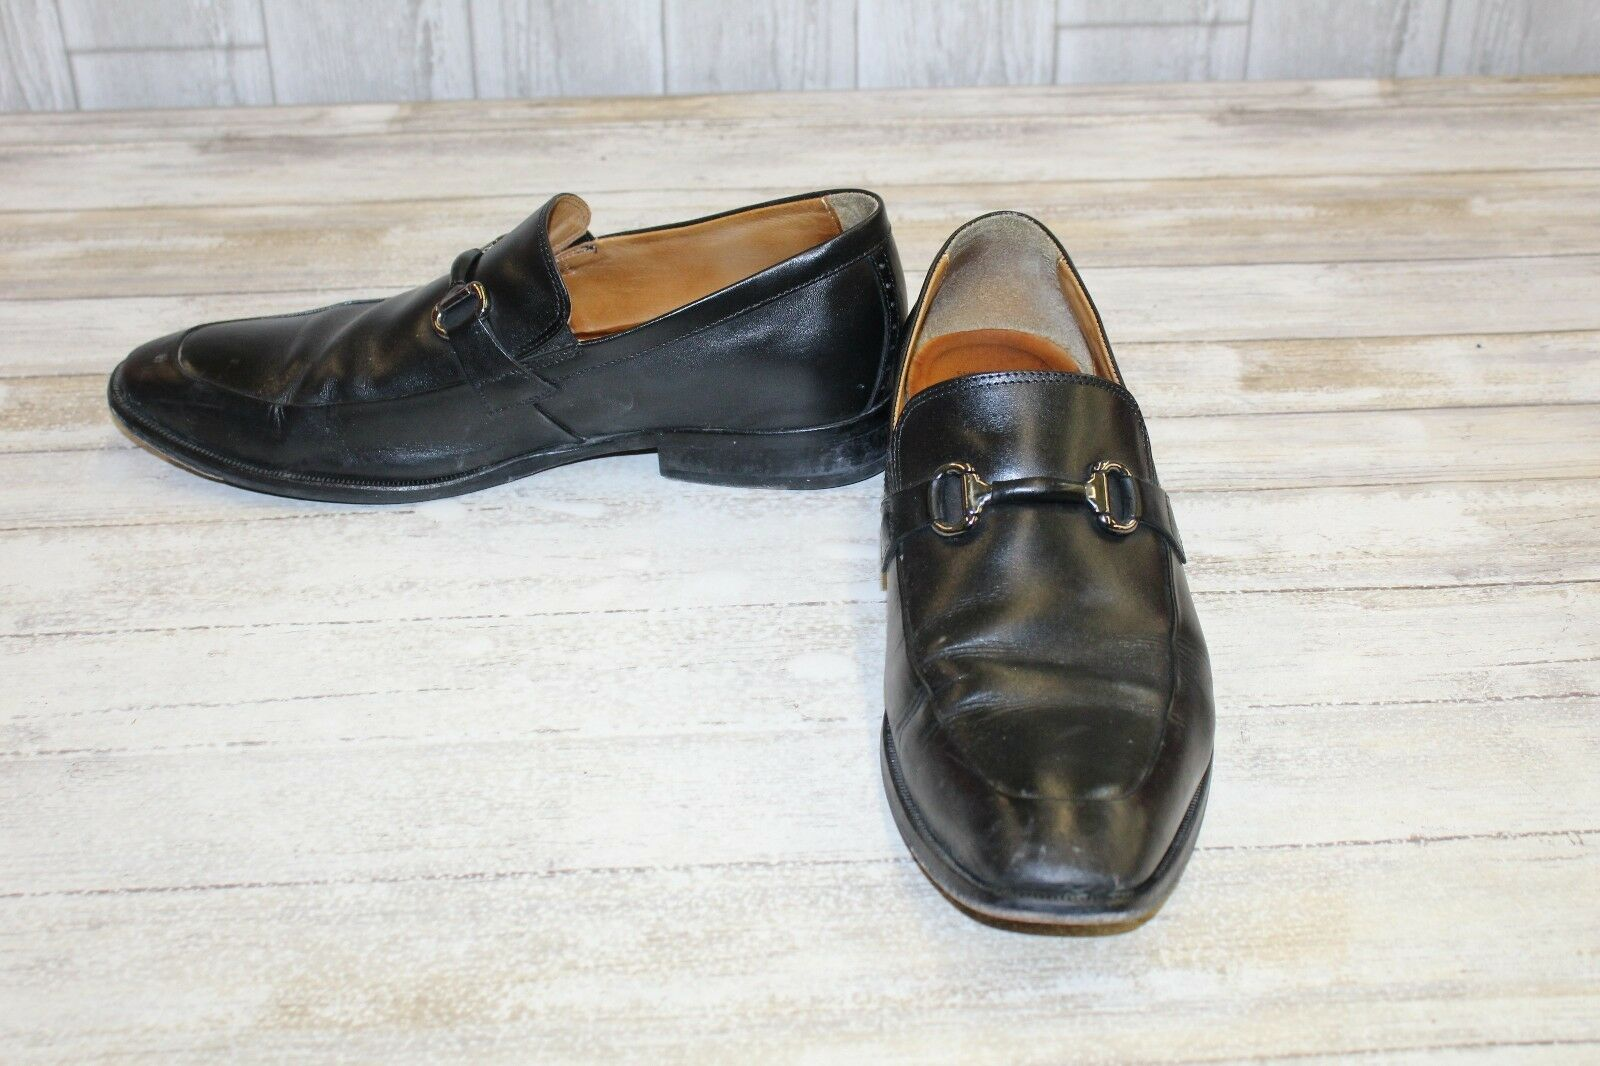 c7c2bffcd35 Johnston   McClain Bit Loafer - Men s Size 10.5 M